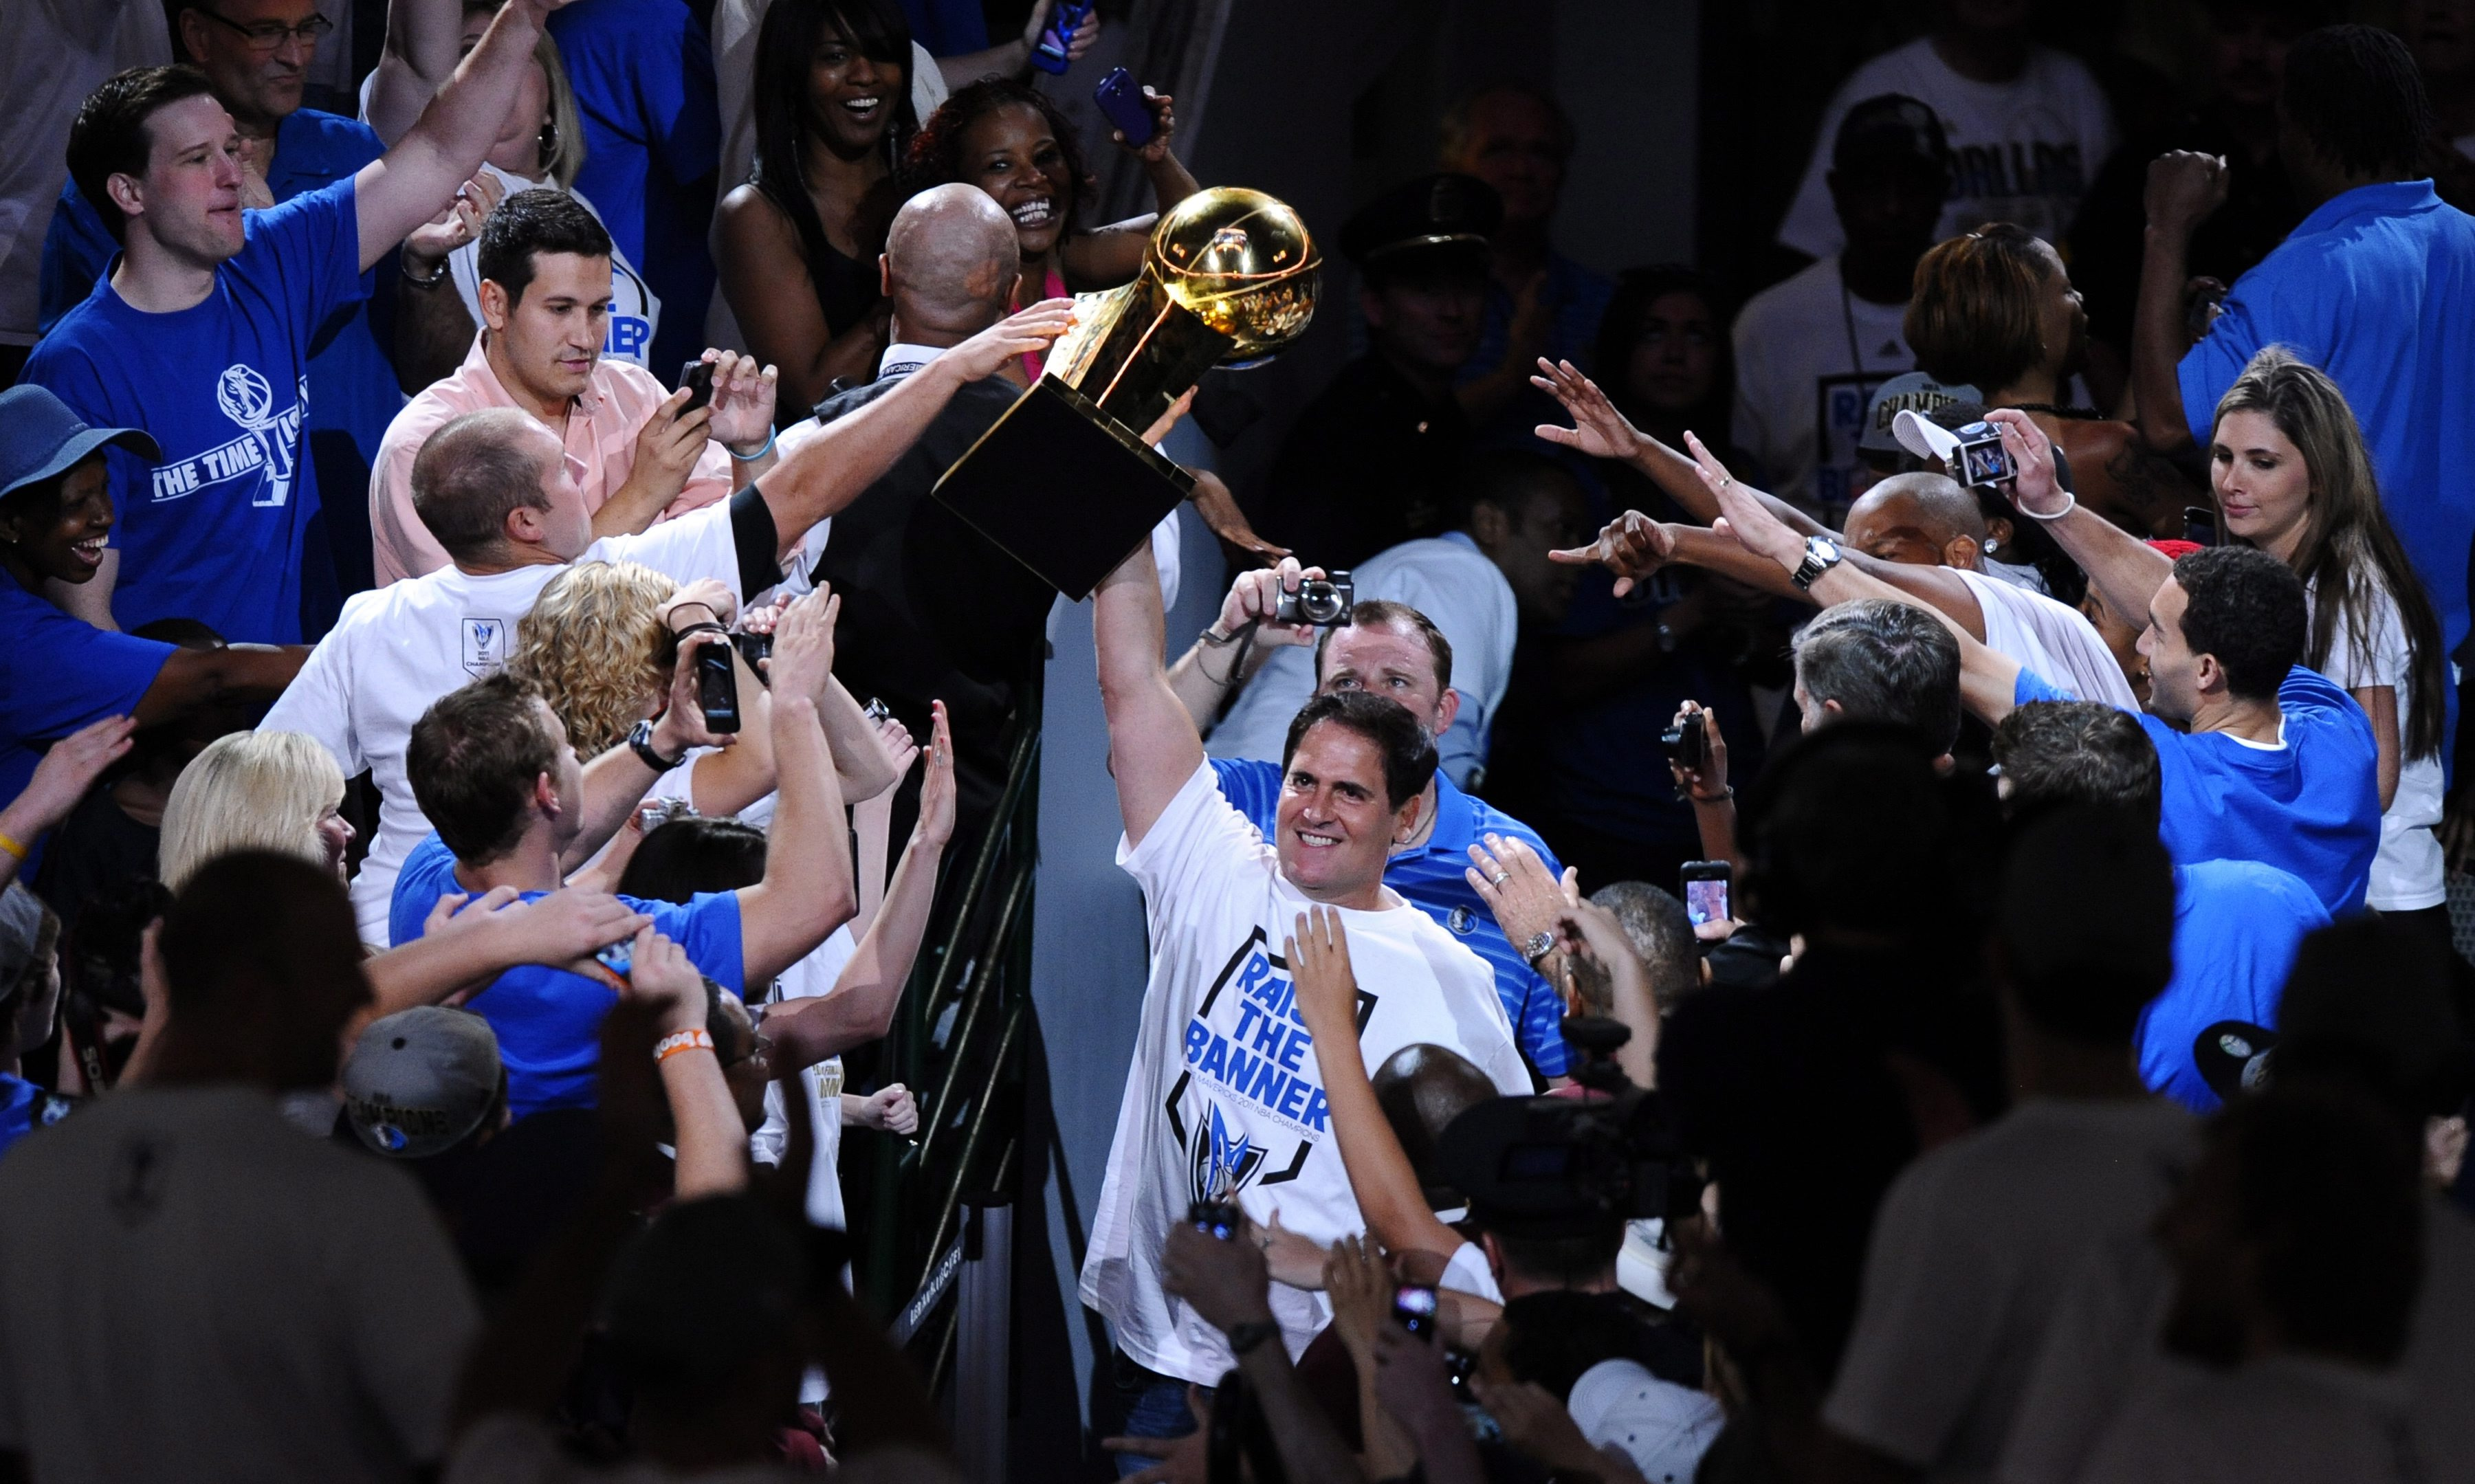 Photo gallery: Hundred of thousands of people attended the parade of NBA champions, Dallas ...